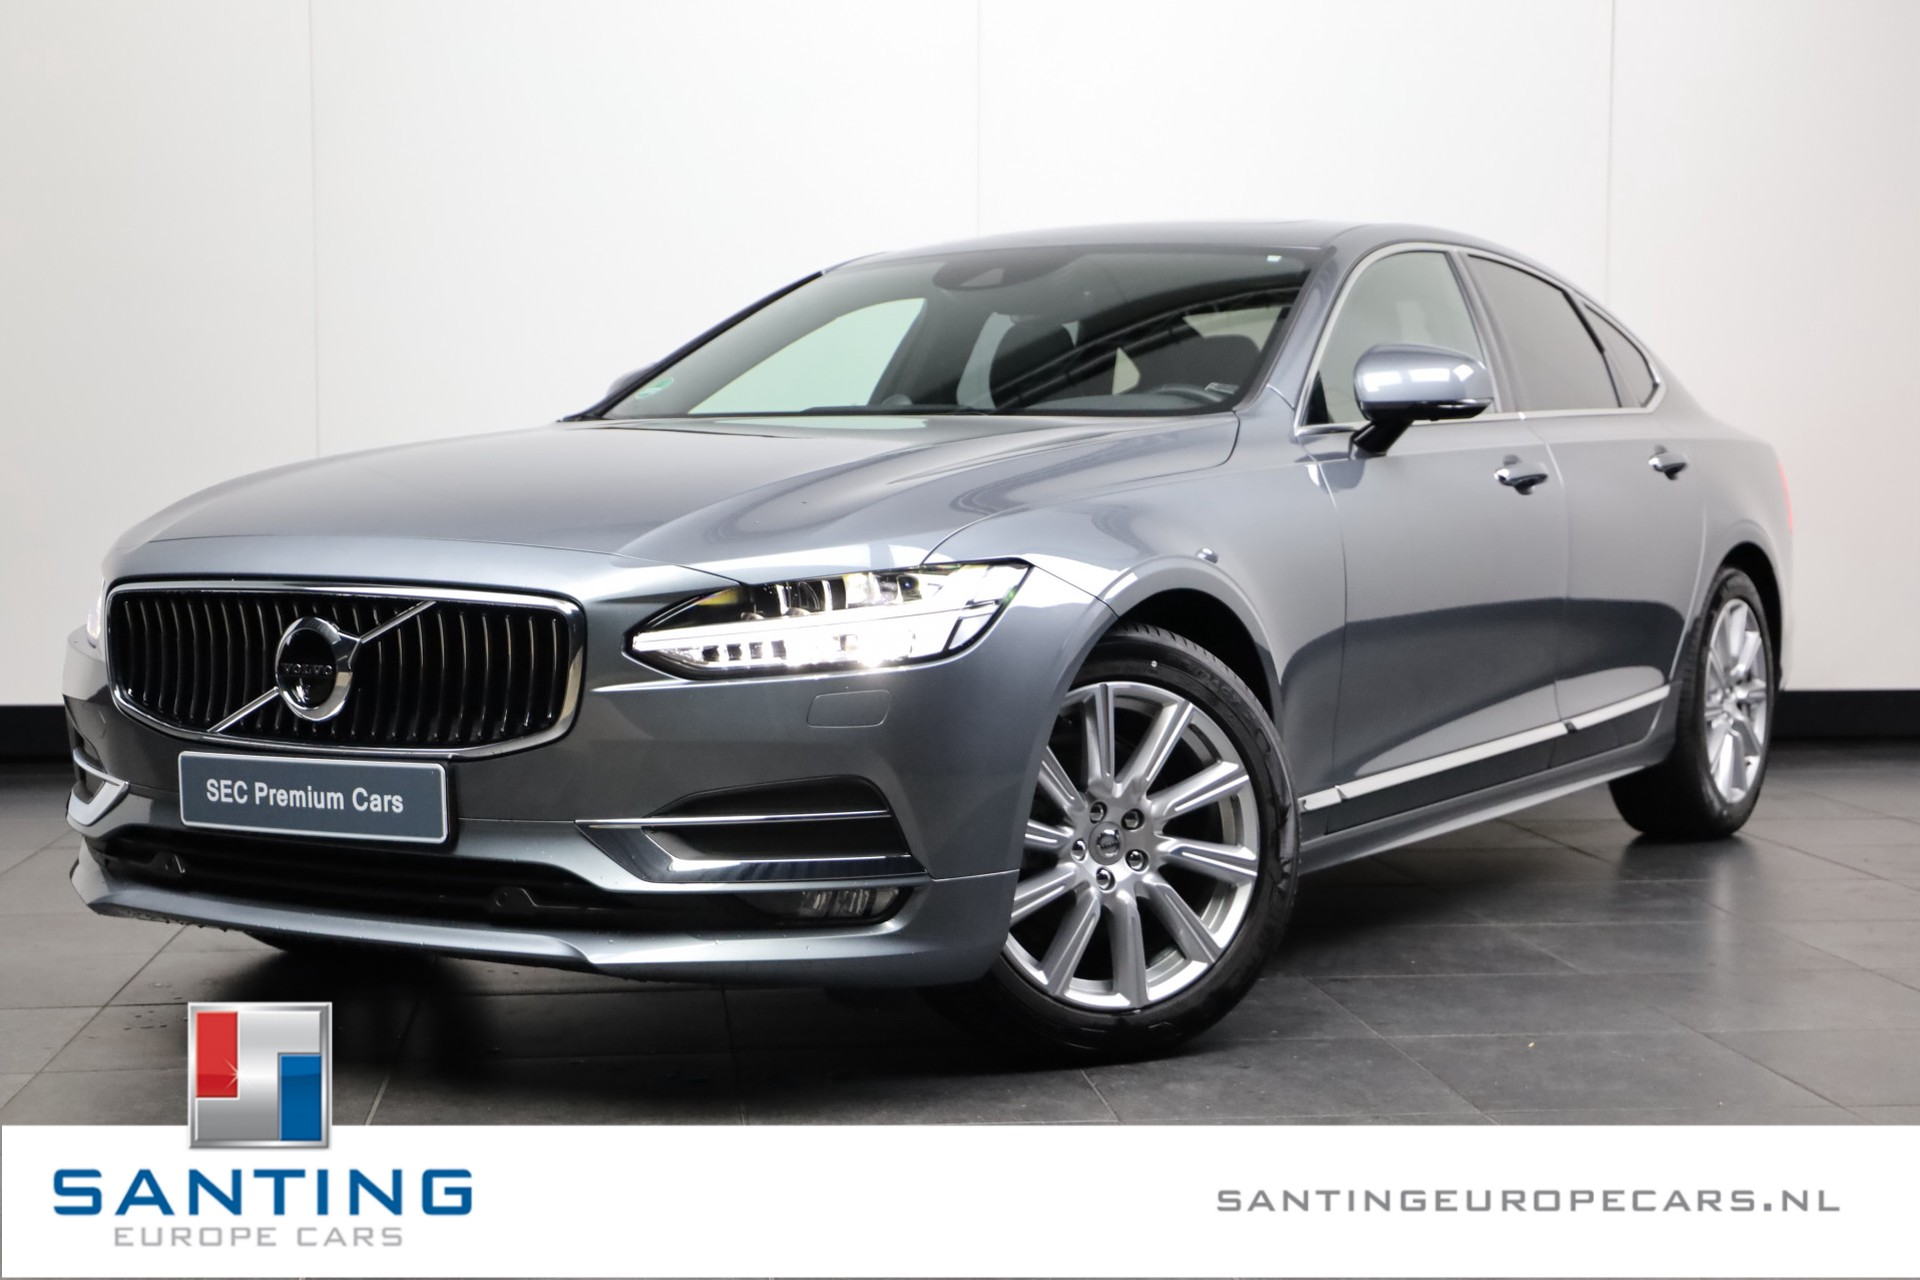 volvo s90 20 d4 inscription – santing europe cars